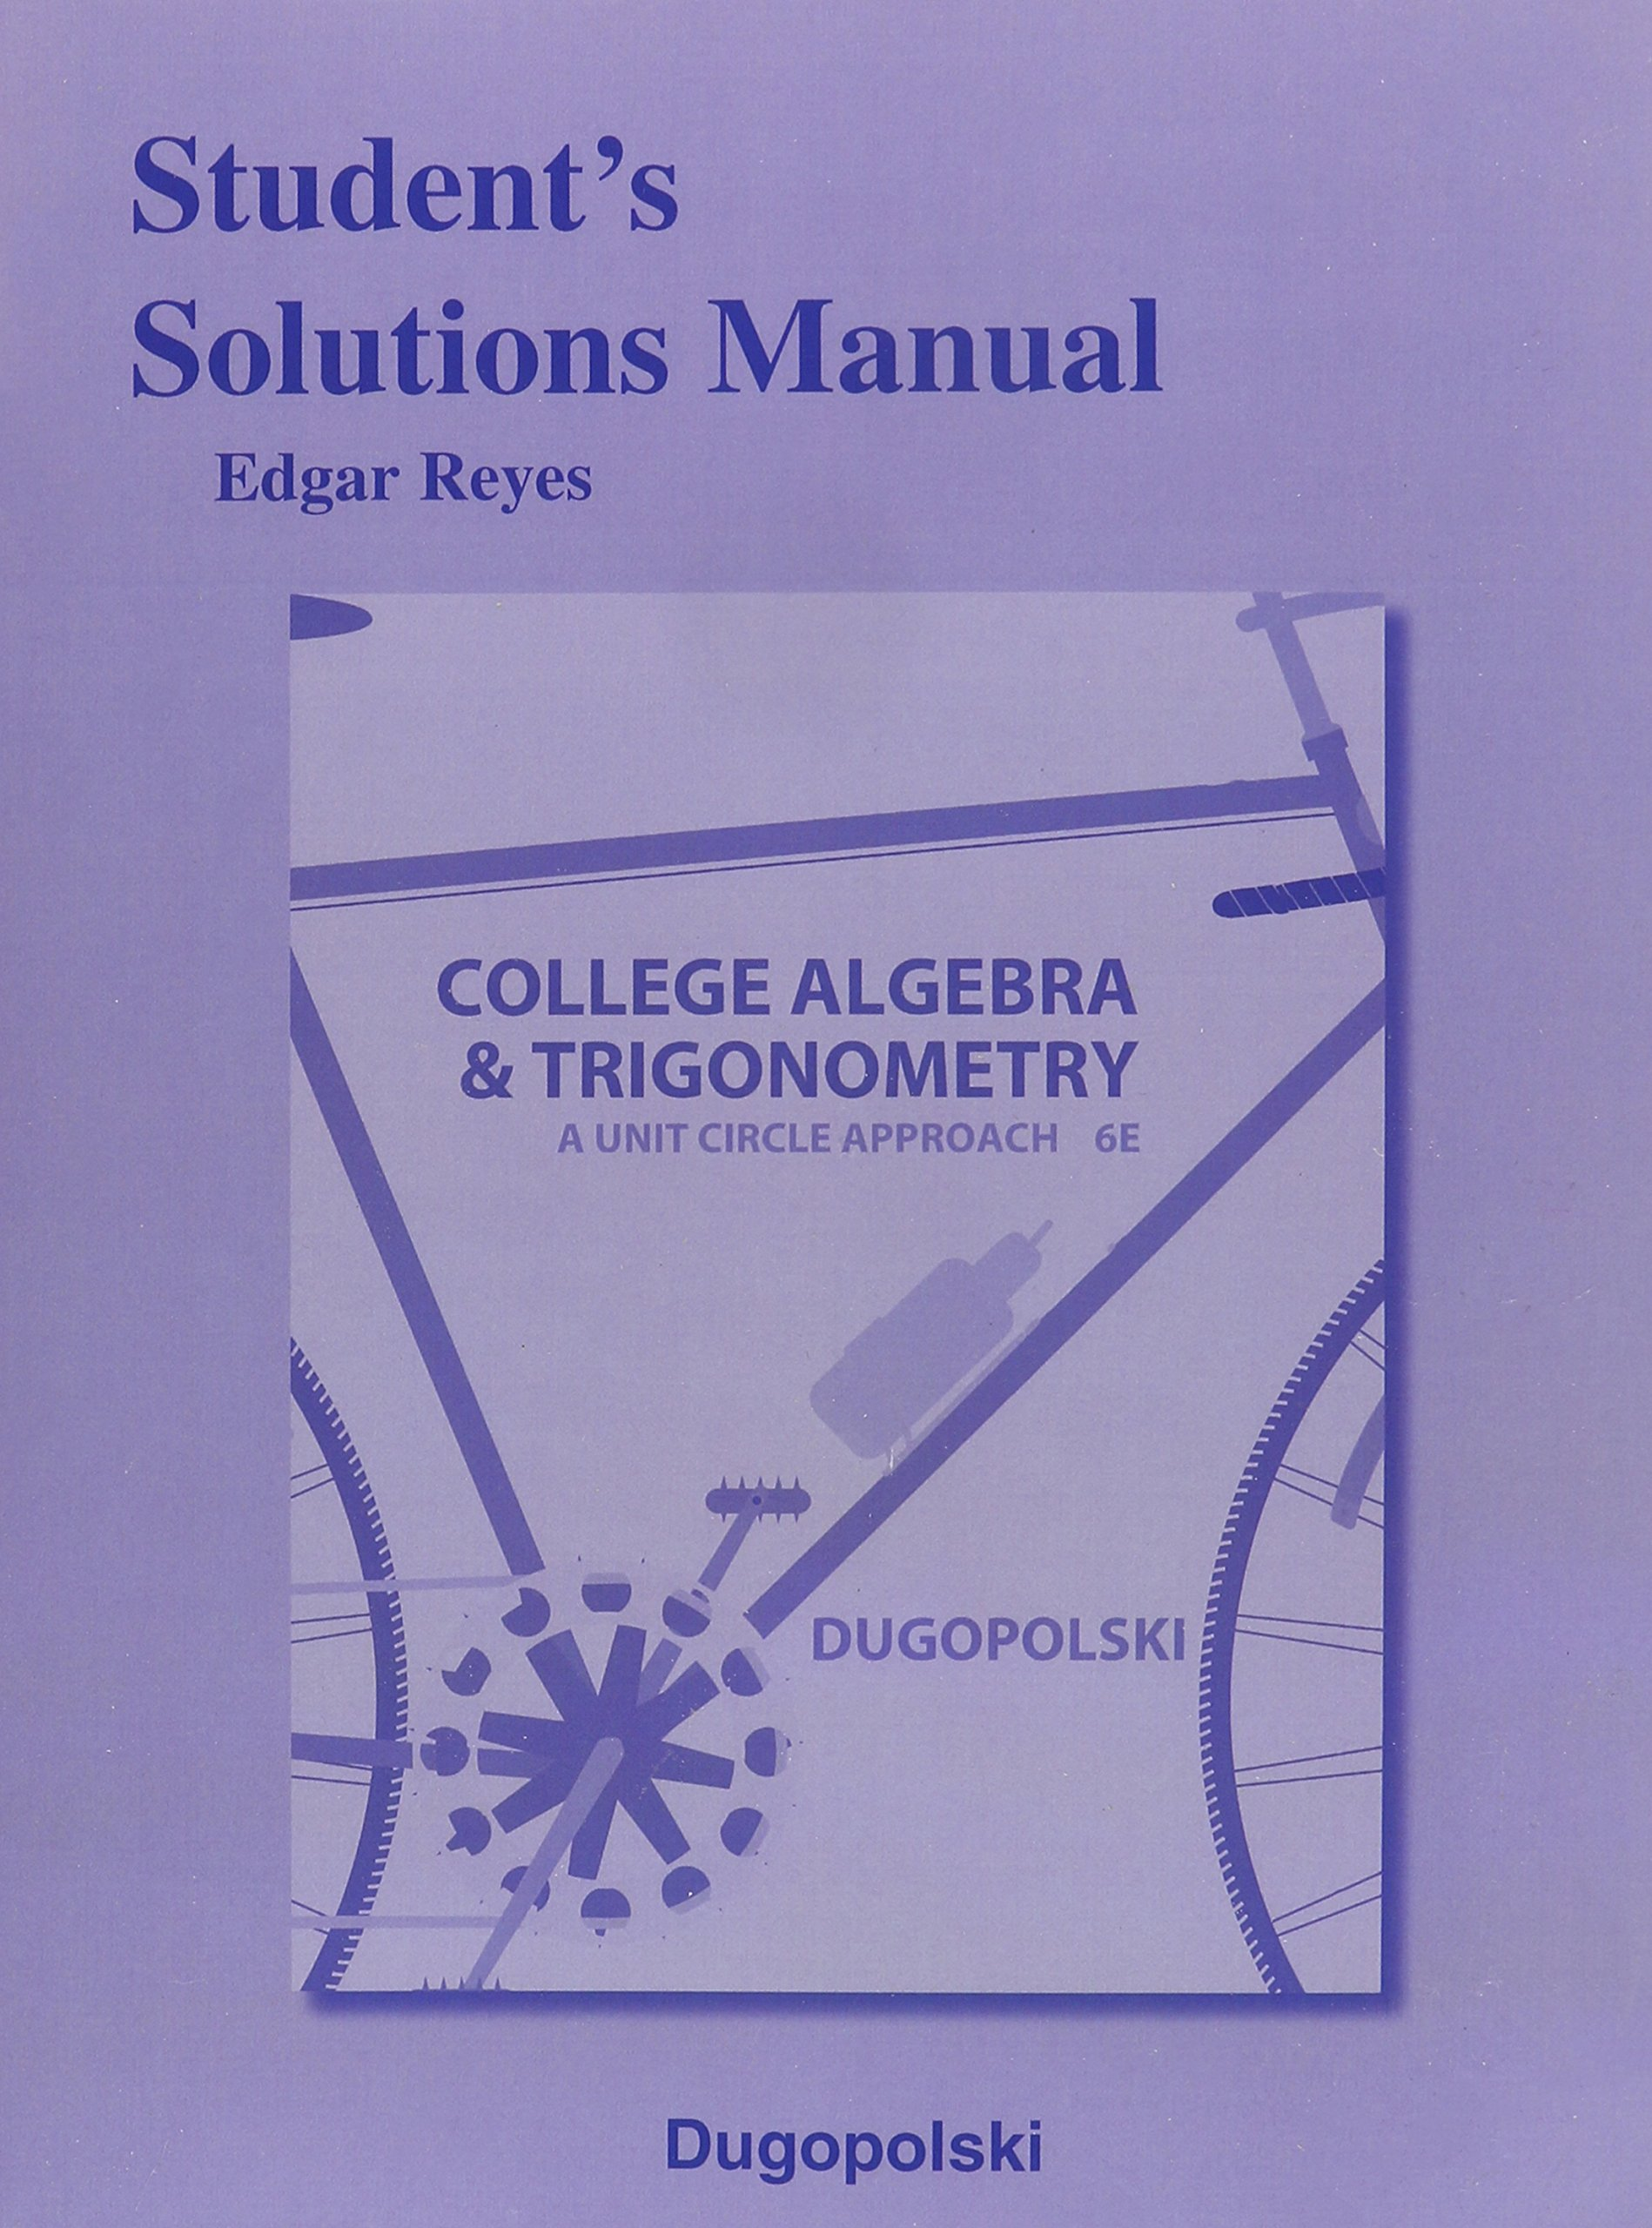 Student's Solutions Manual for College Algebra and Trigonometry: A Unit  Circle Approach: Edgar Reyes: 9780321916532: Books - Amazon.ca